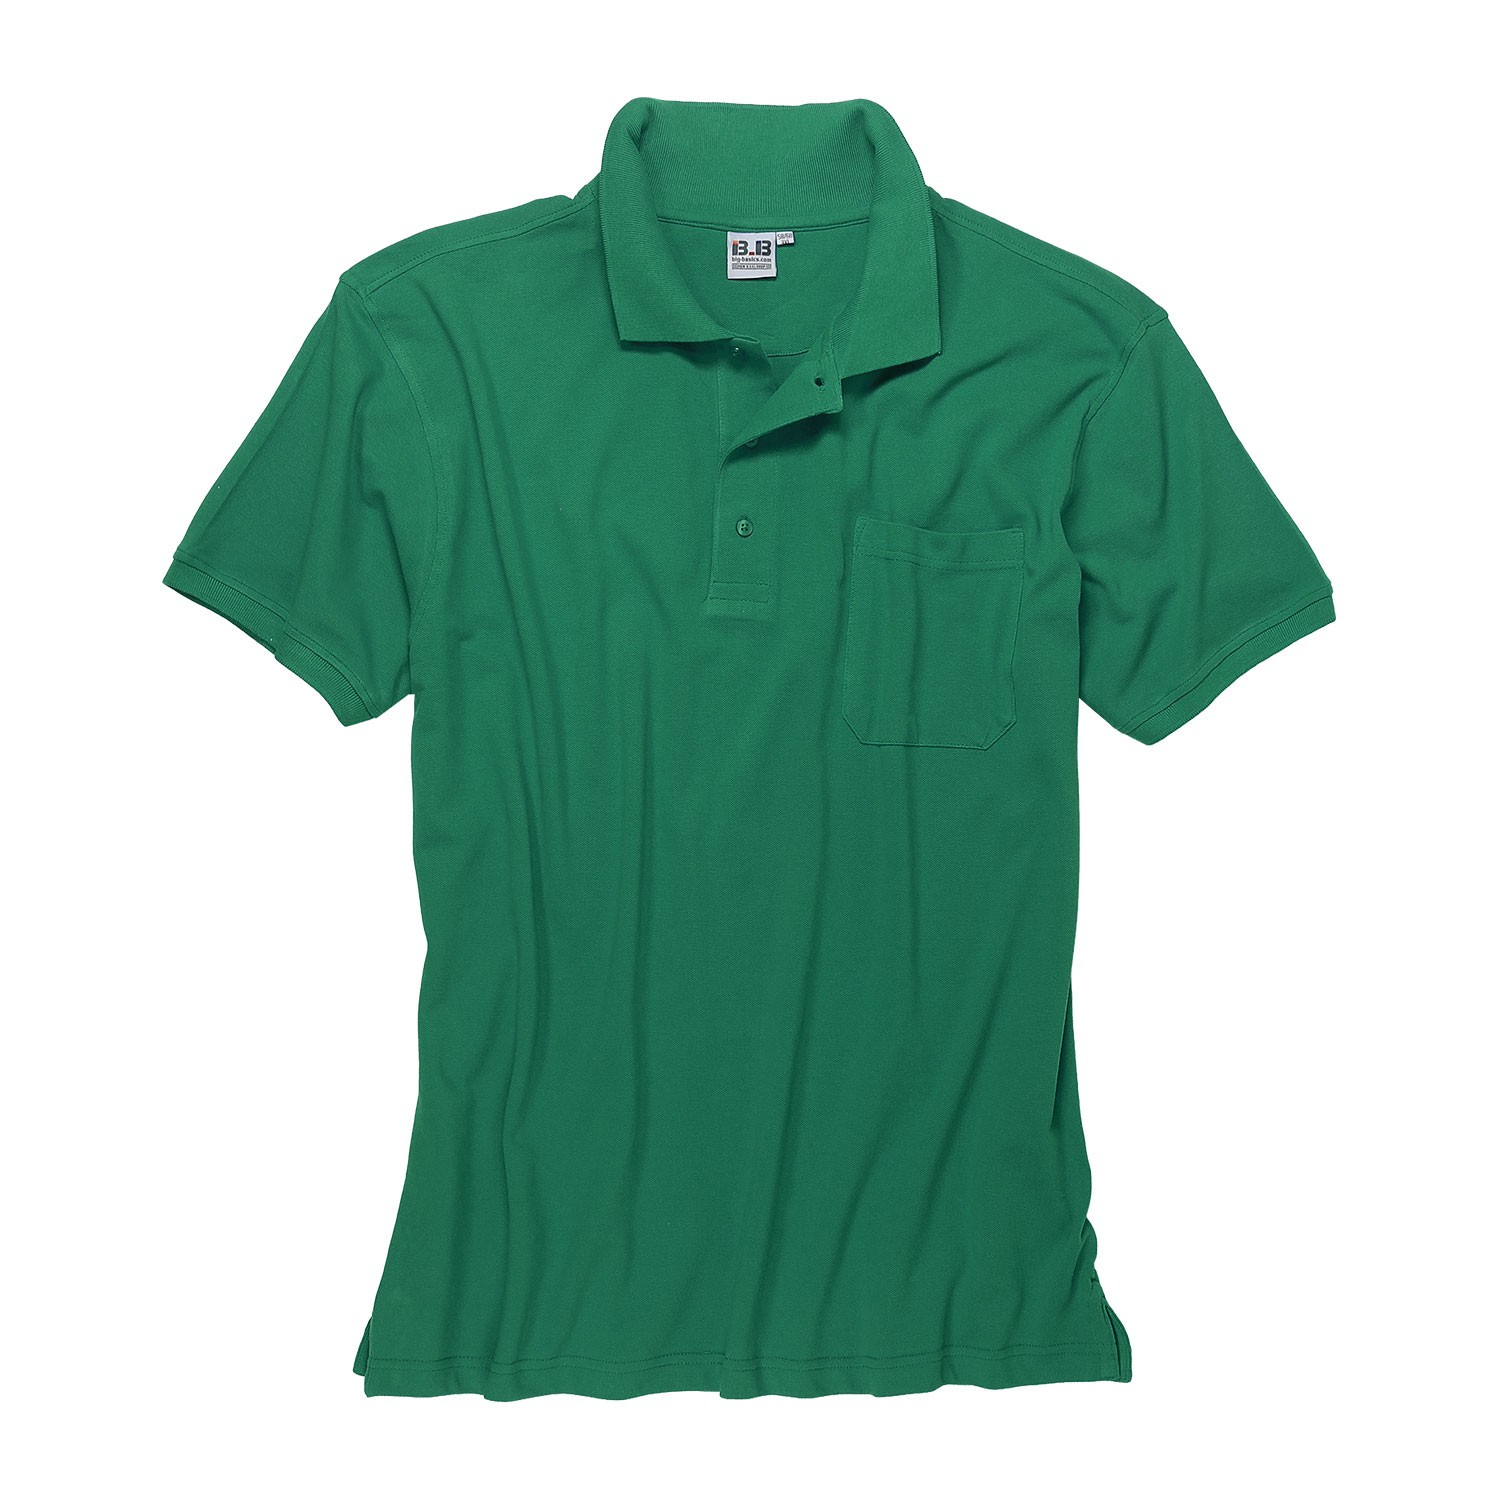 Detail Image to Green polo shirt by Big-Basics in oversizes up to 8XL